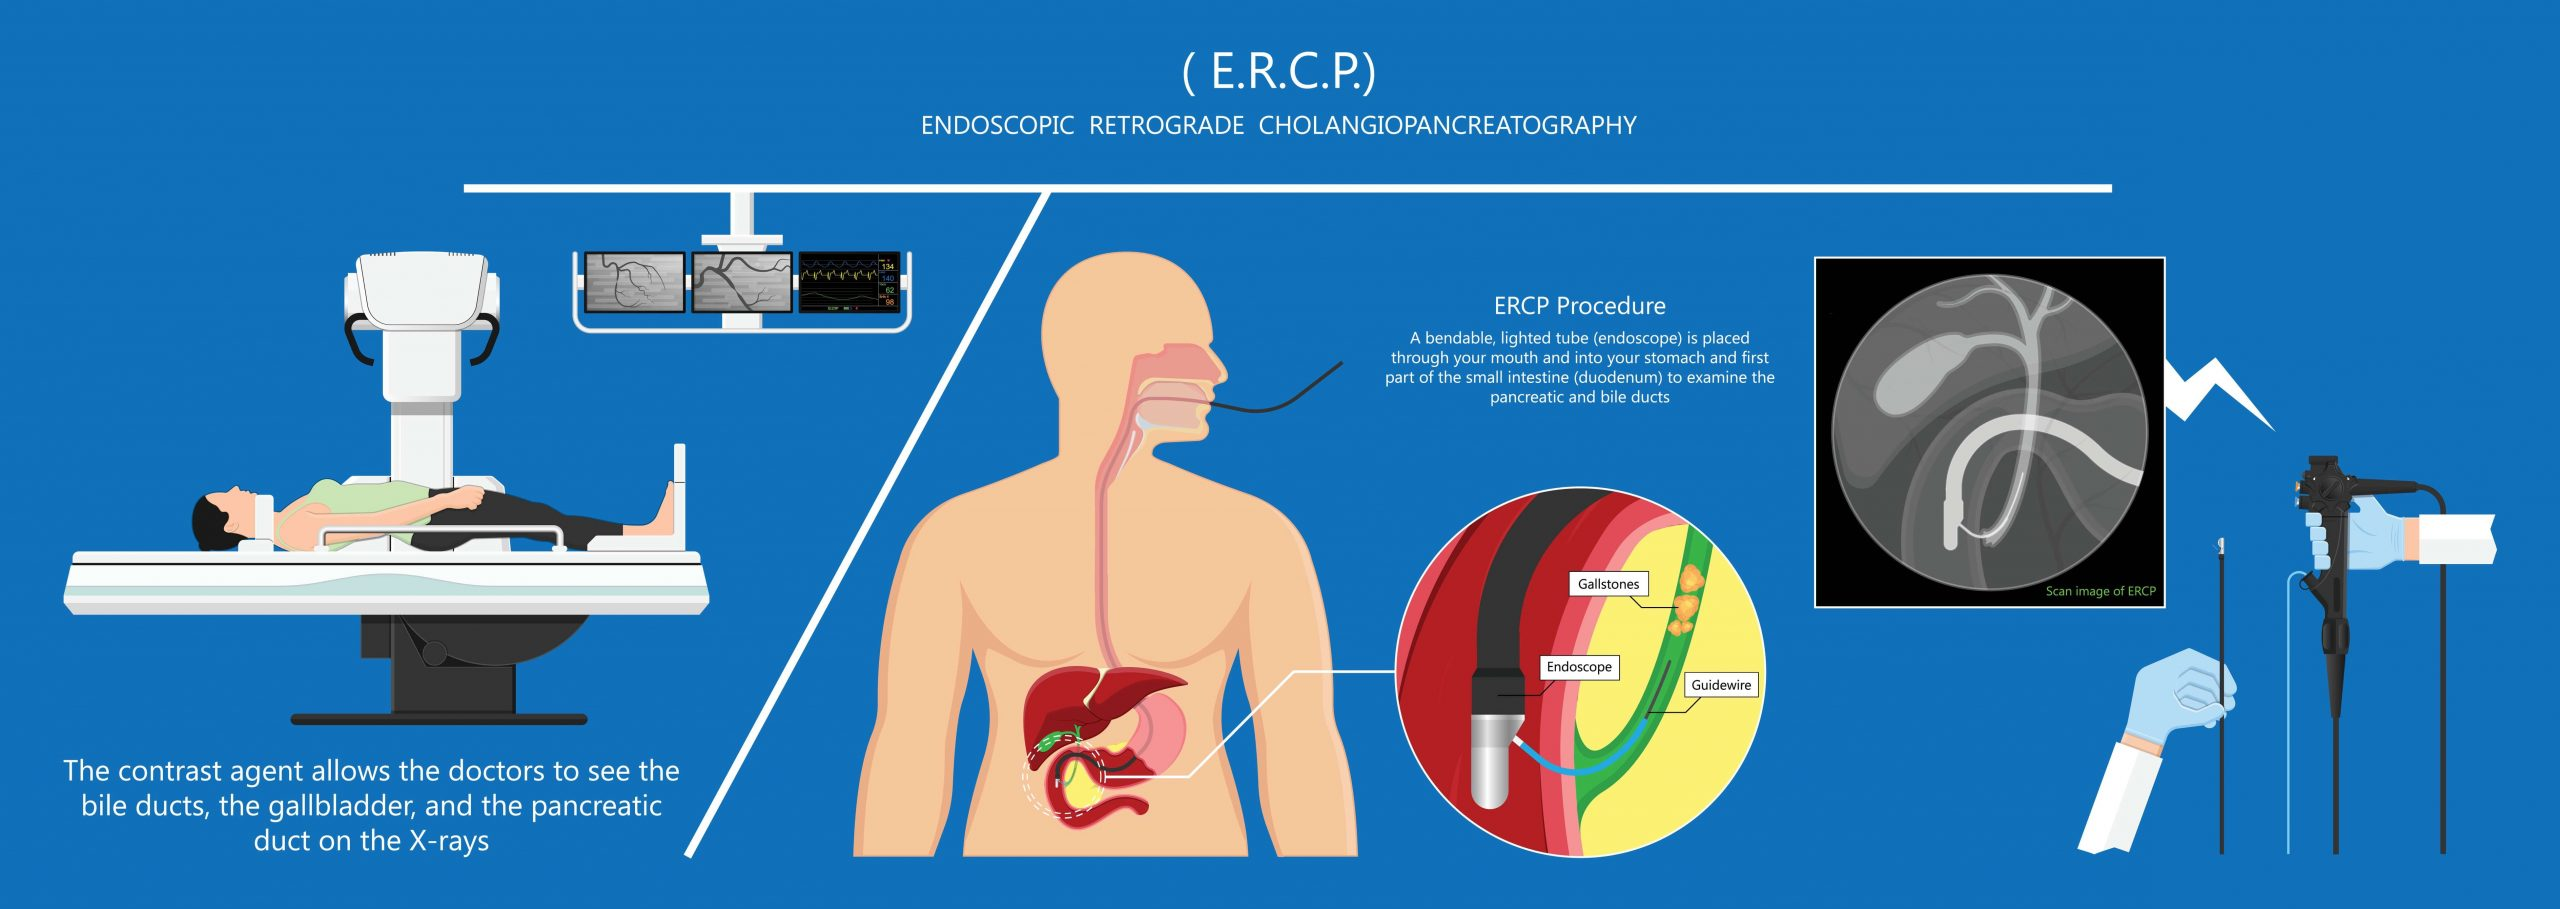 ERCP-information for Diagnosis of Gallstones